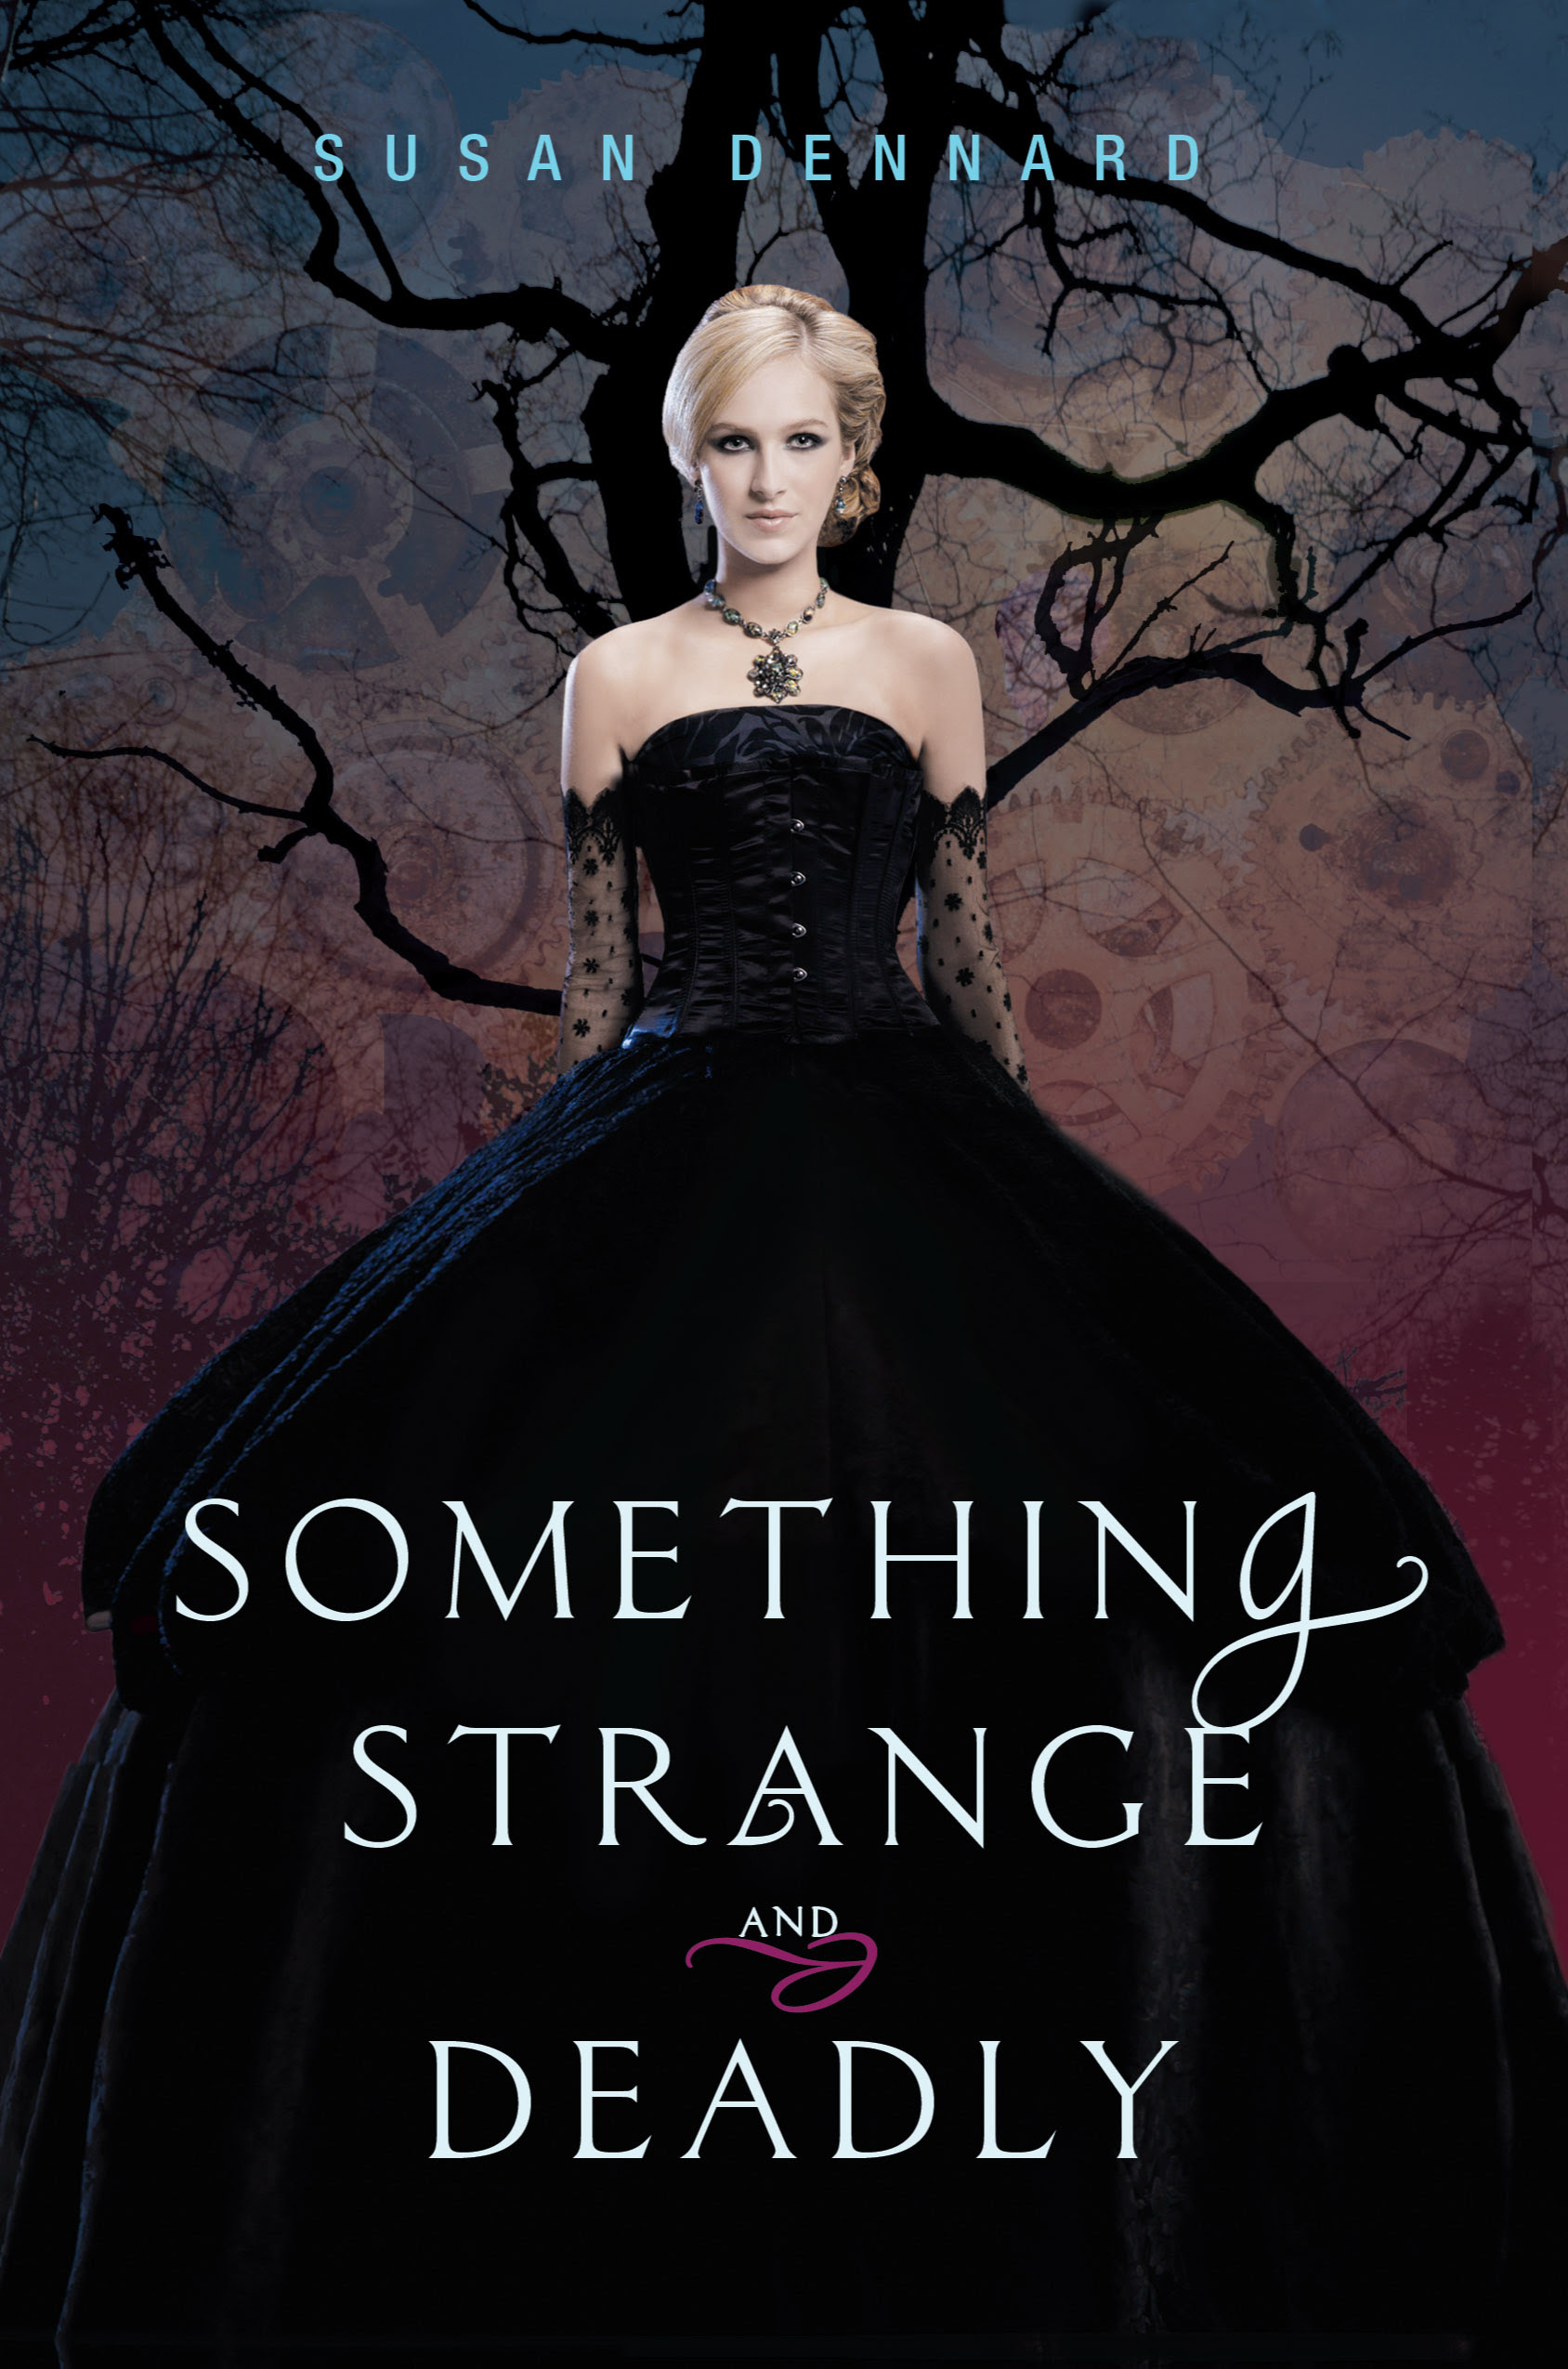 https://www.goodreads.com/book/show/9859436-something-strange-and-deadly?ac=1